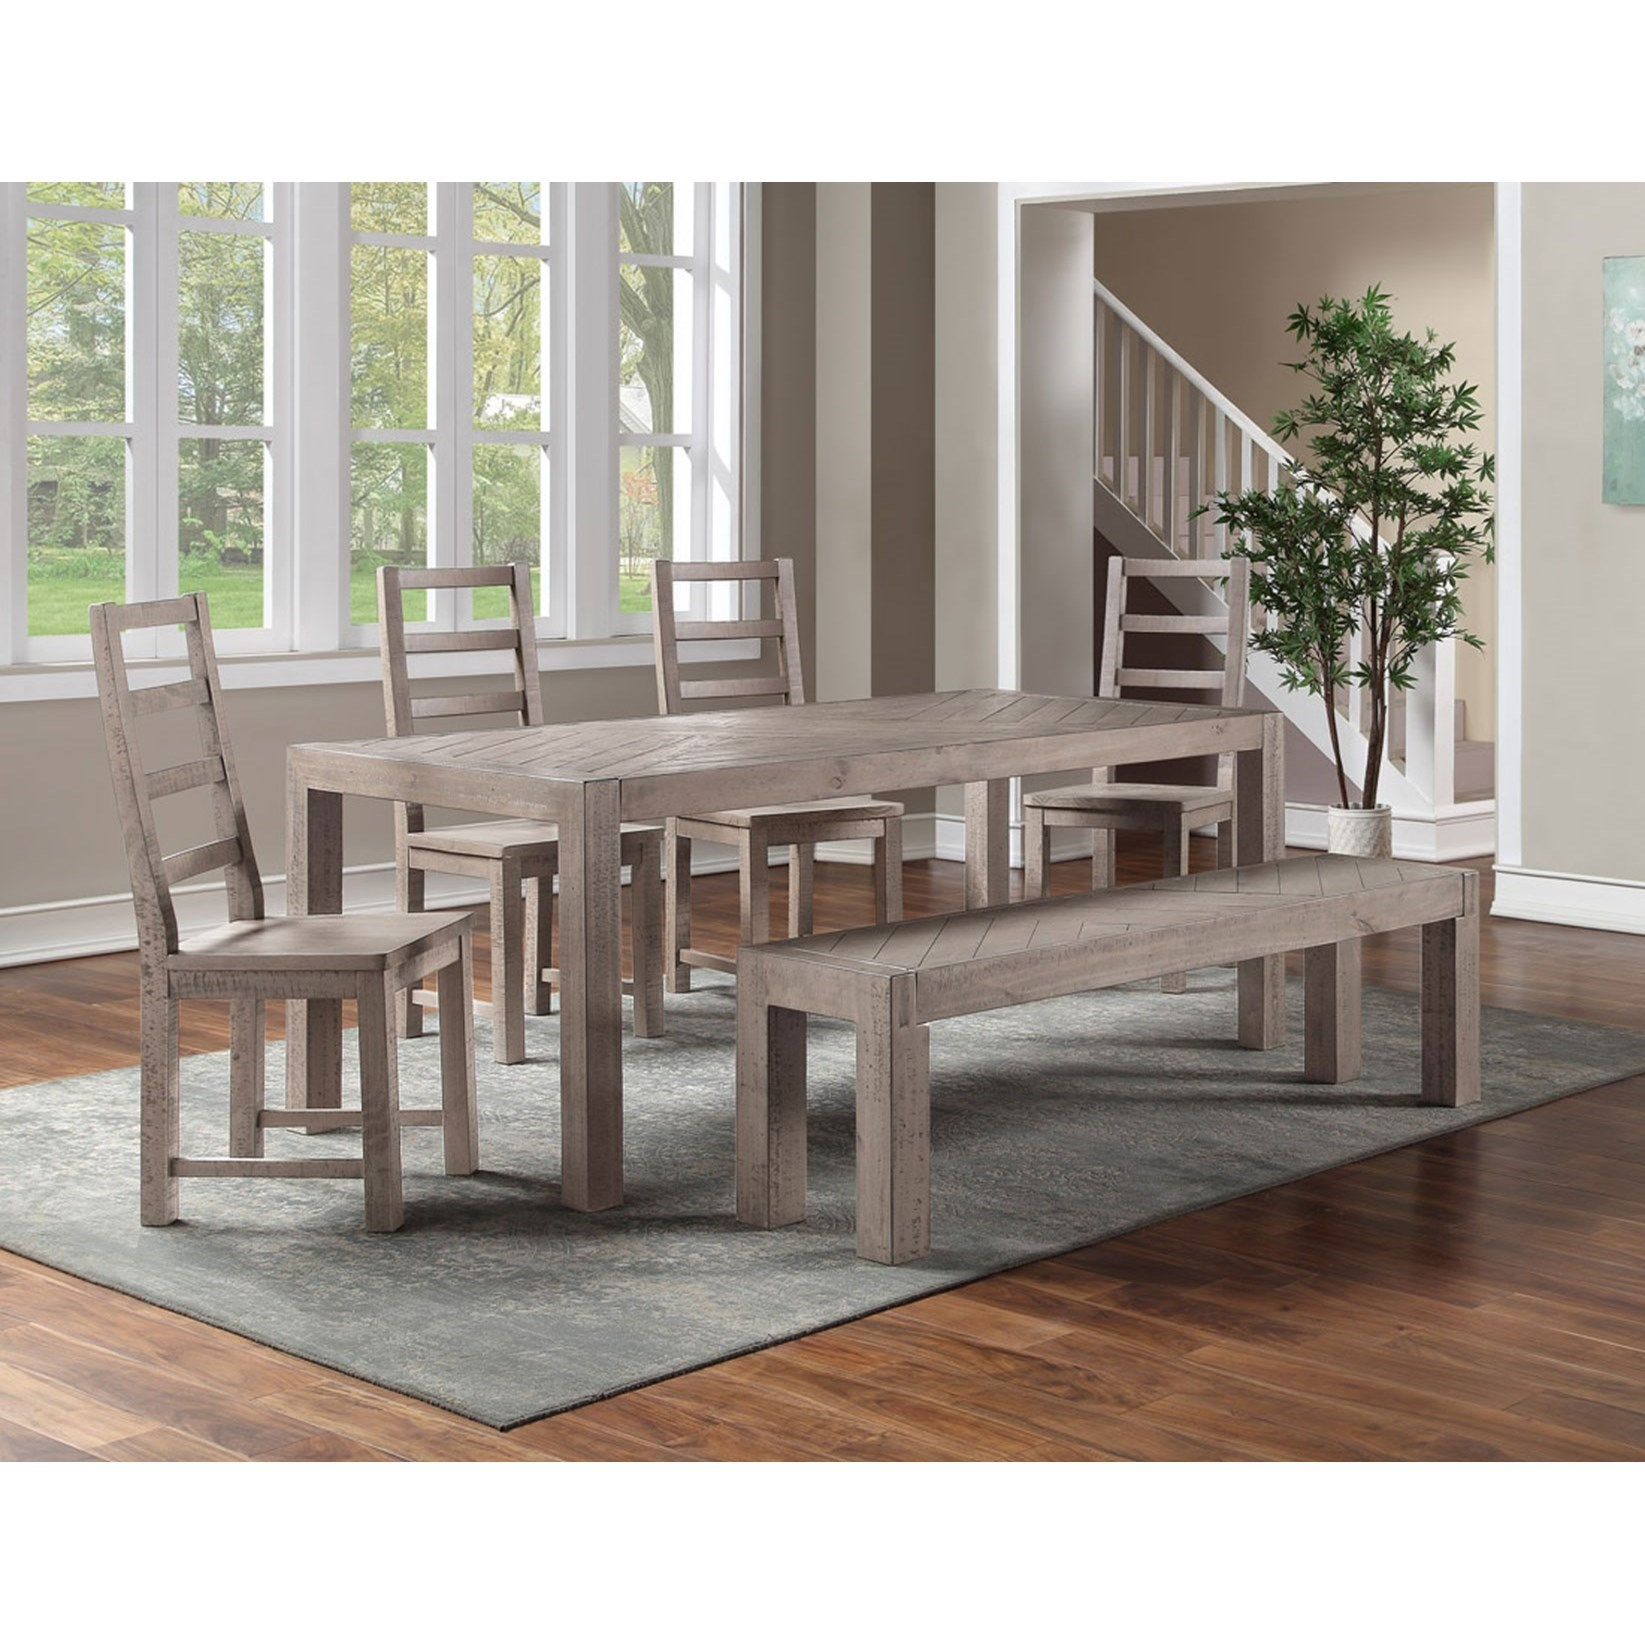 Auckland Table & Chair Set with Bench by Steve Silver at Standard Furniture